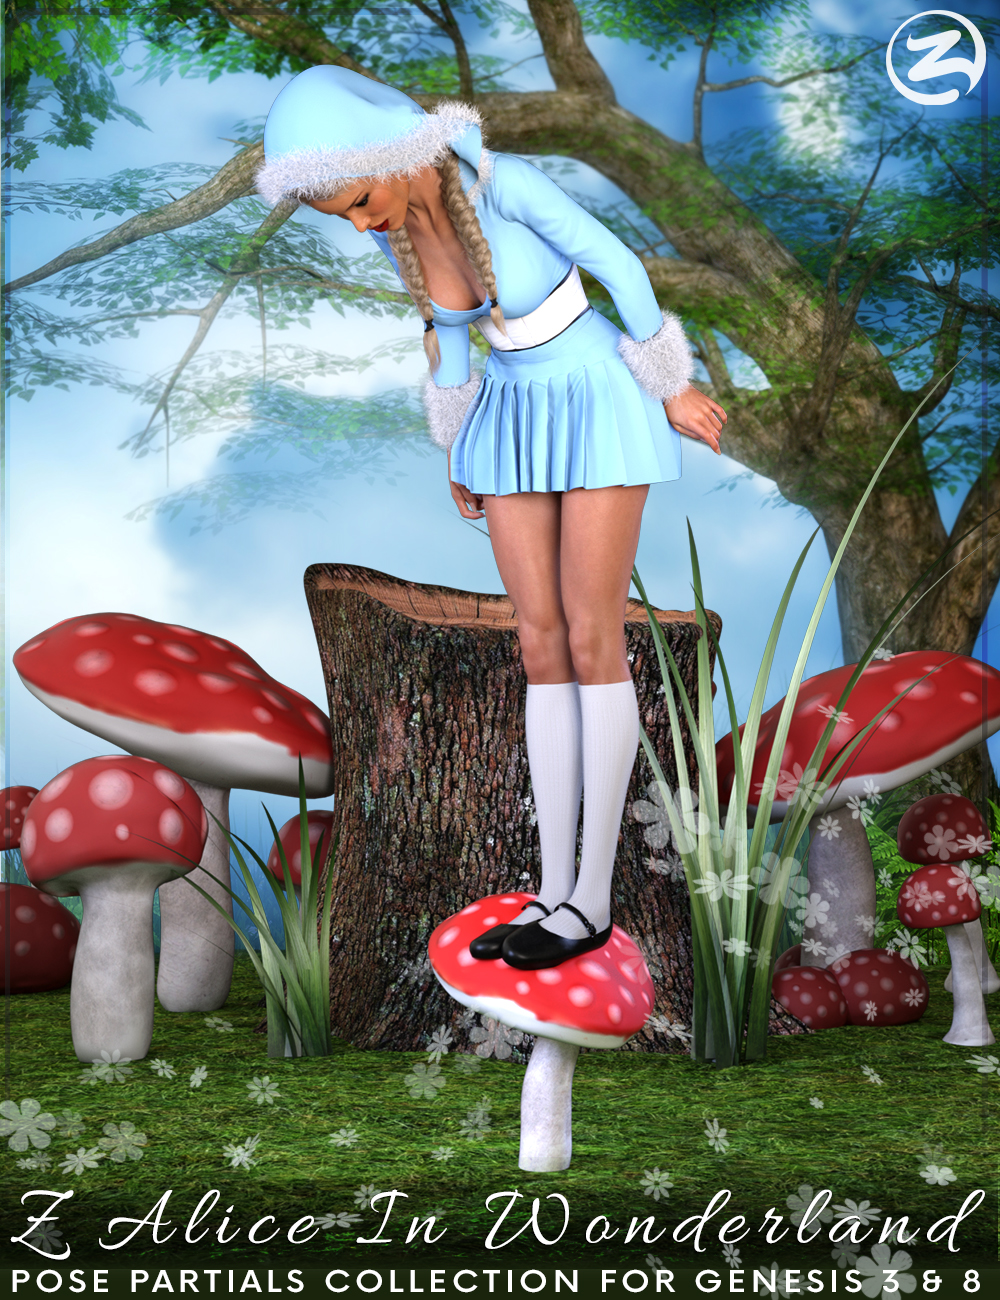 Z Alice In Wonderland - Poses, Partials and Expressions for Genesis 3 & 8 Female by: Zeddicuss, 3D Models by Daz 3D